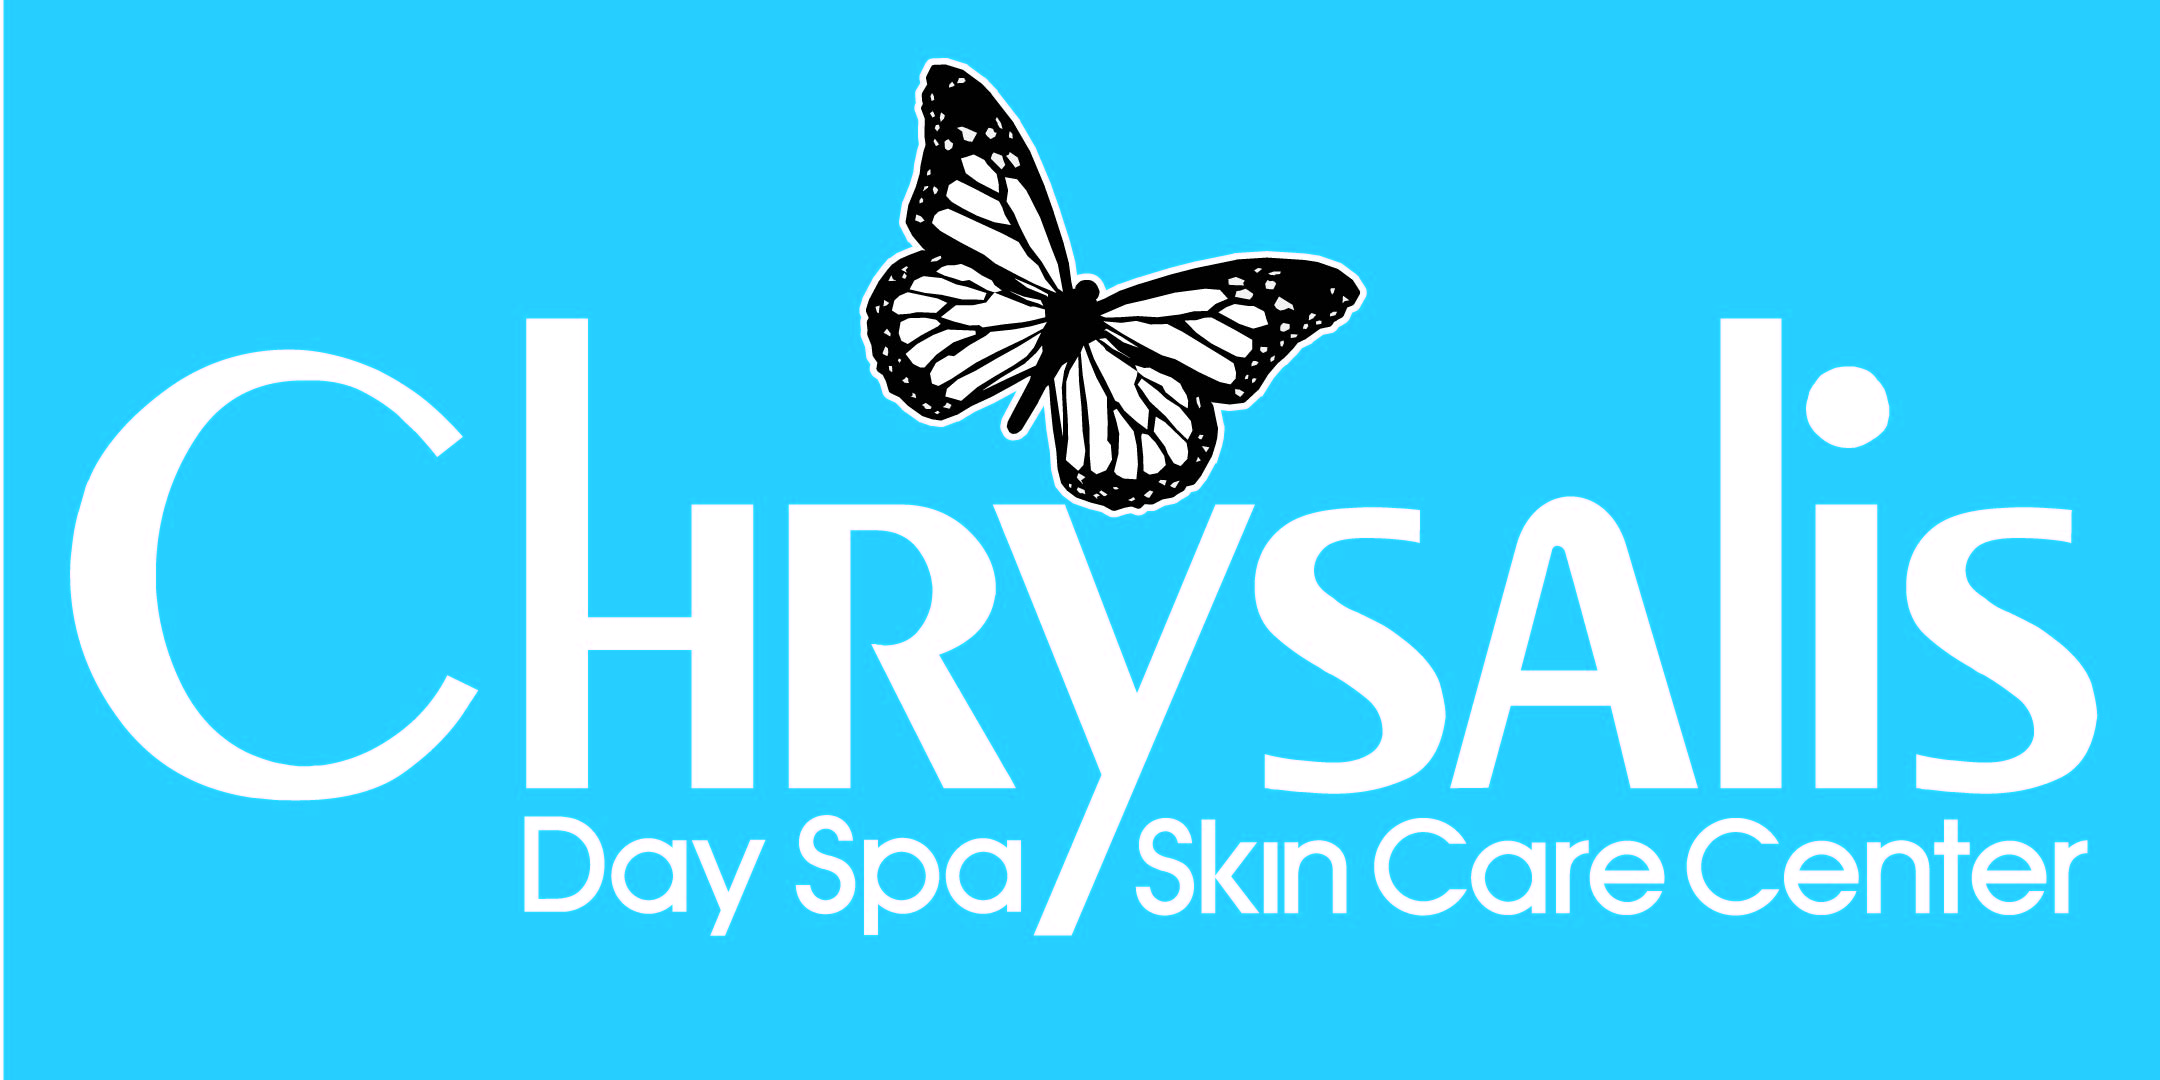 Chrysalis Day Spa